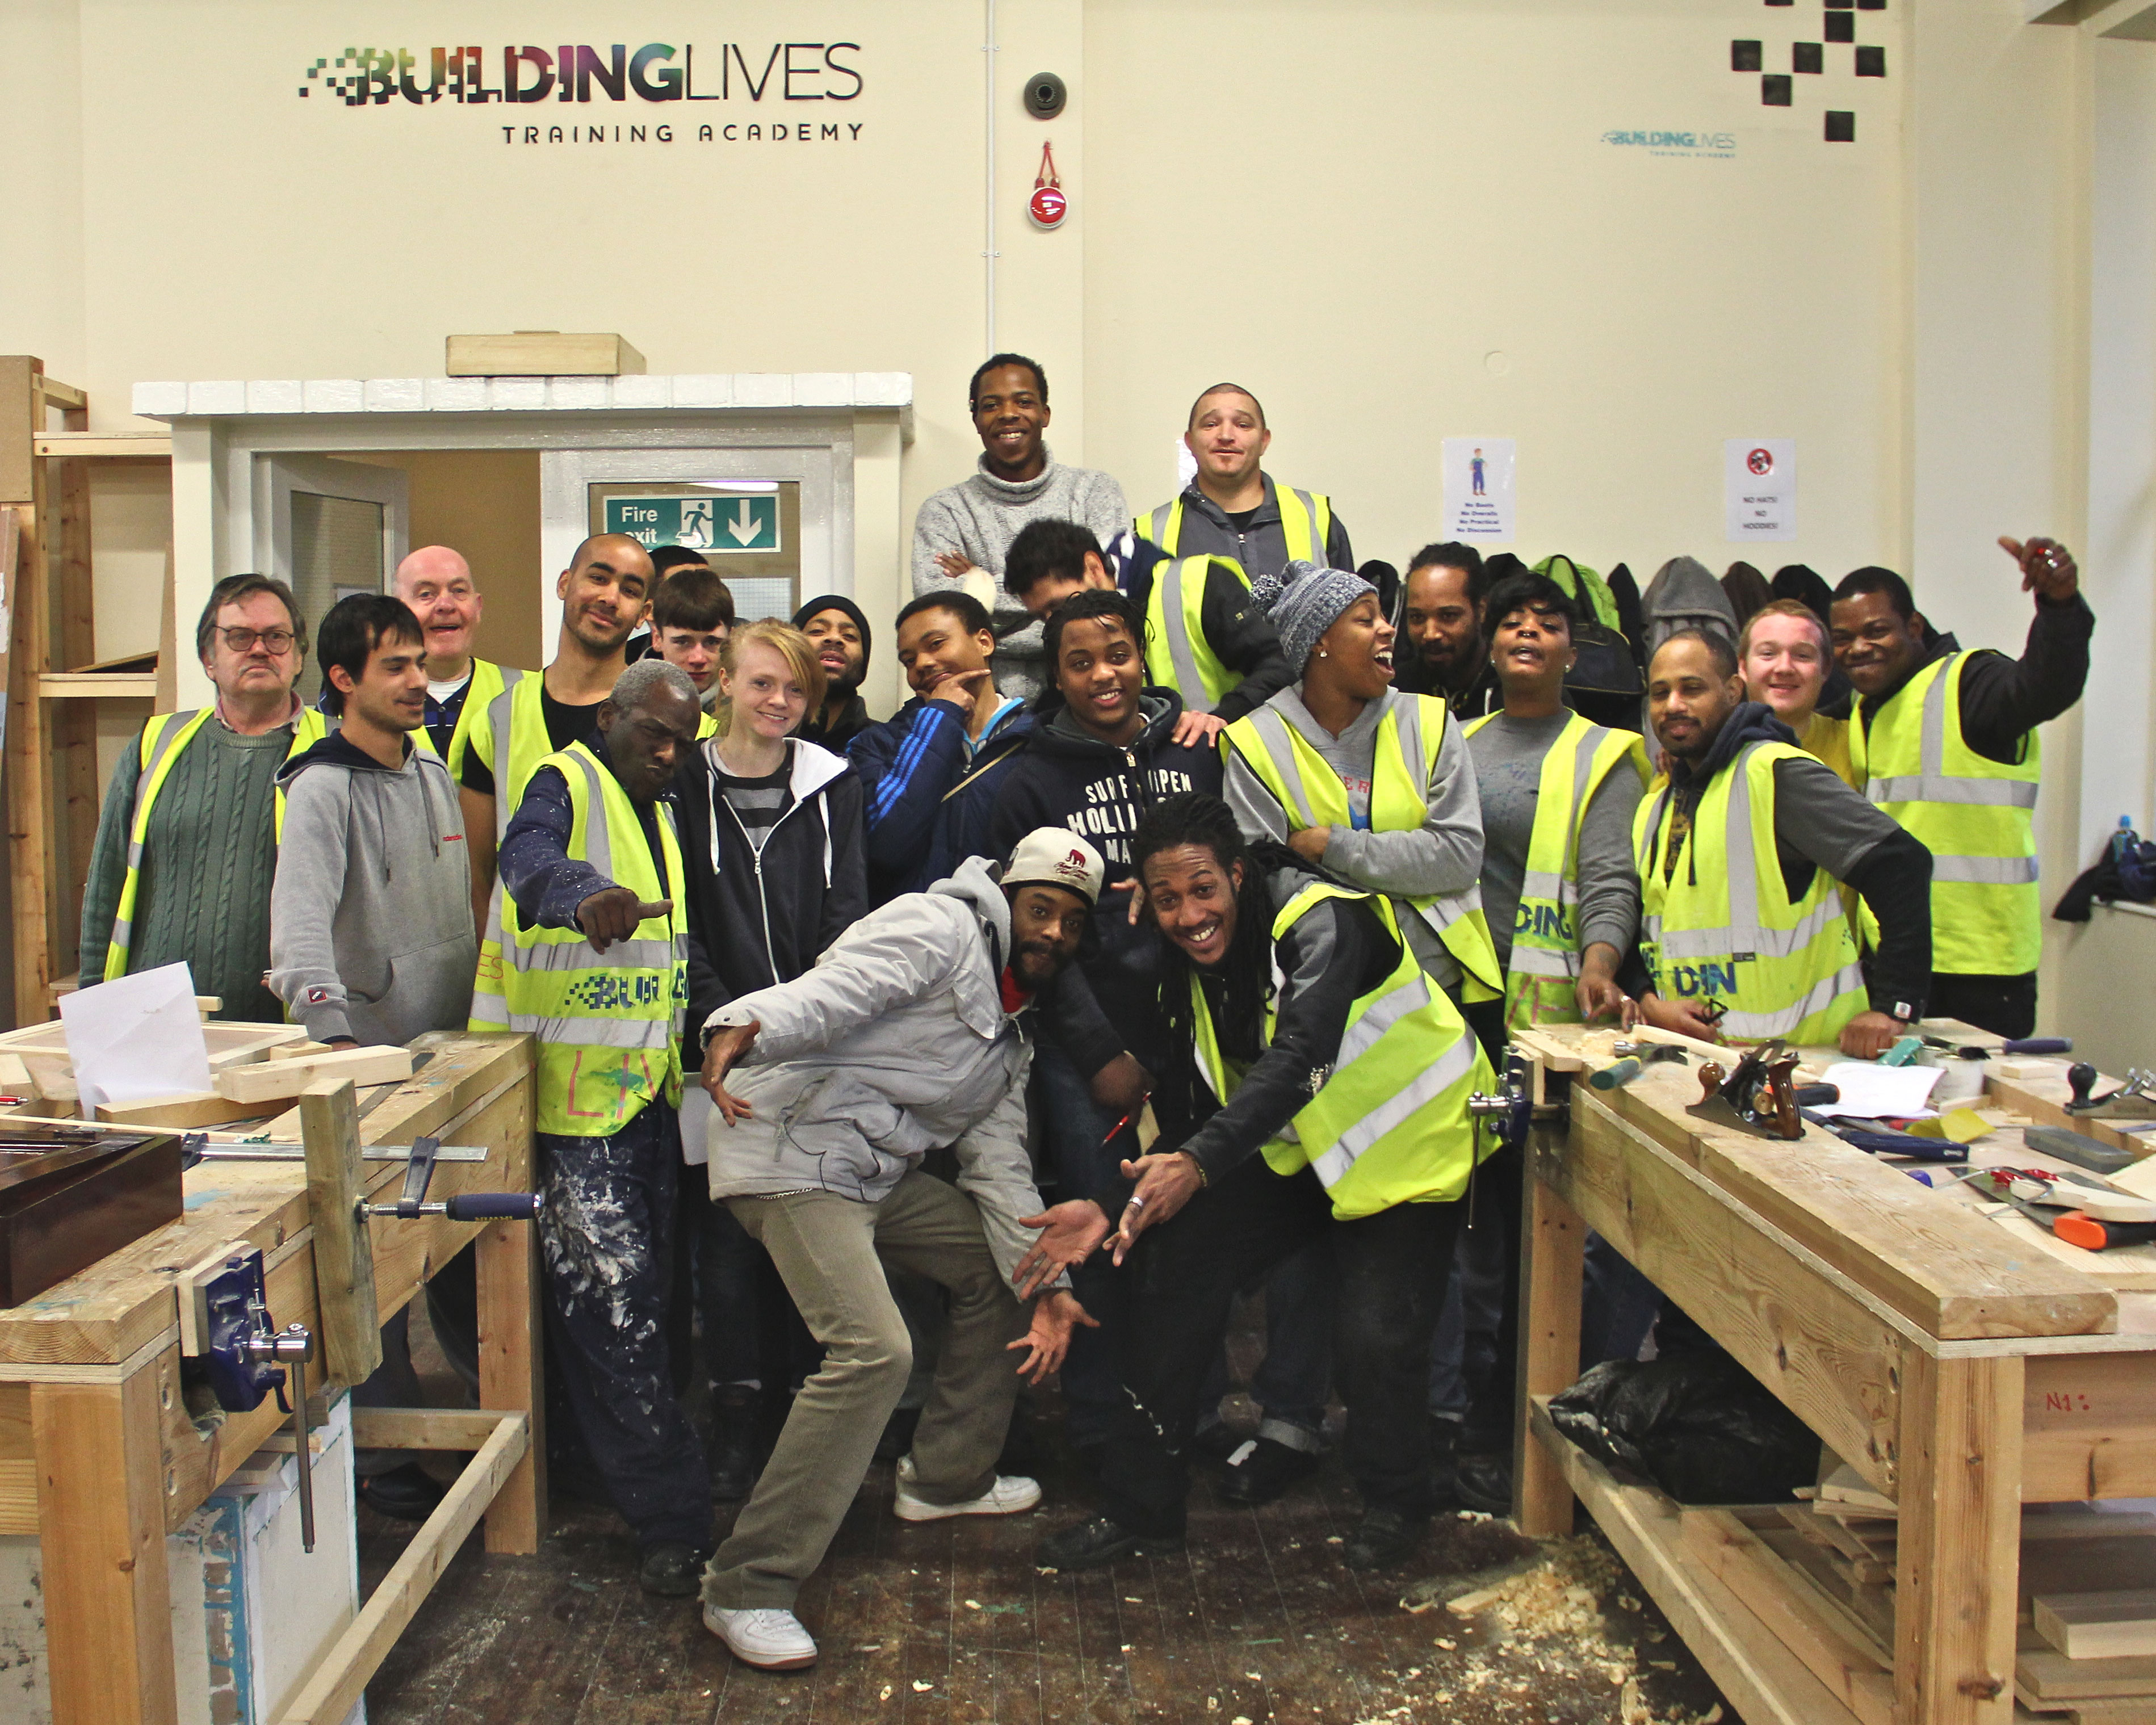 Trainees at Building Lives Training Academy